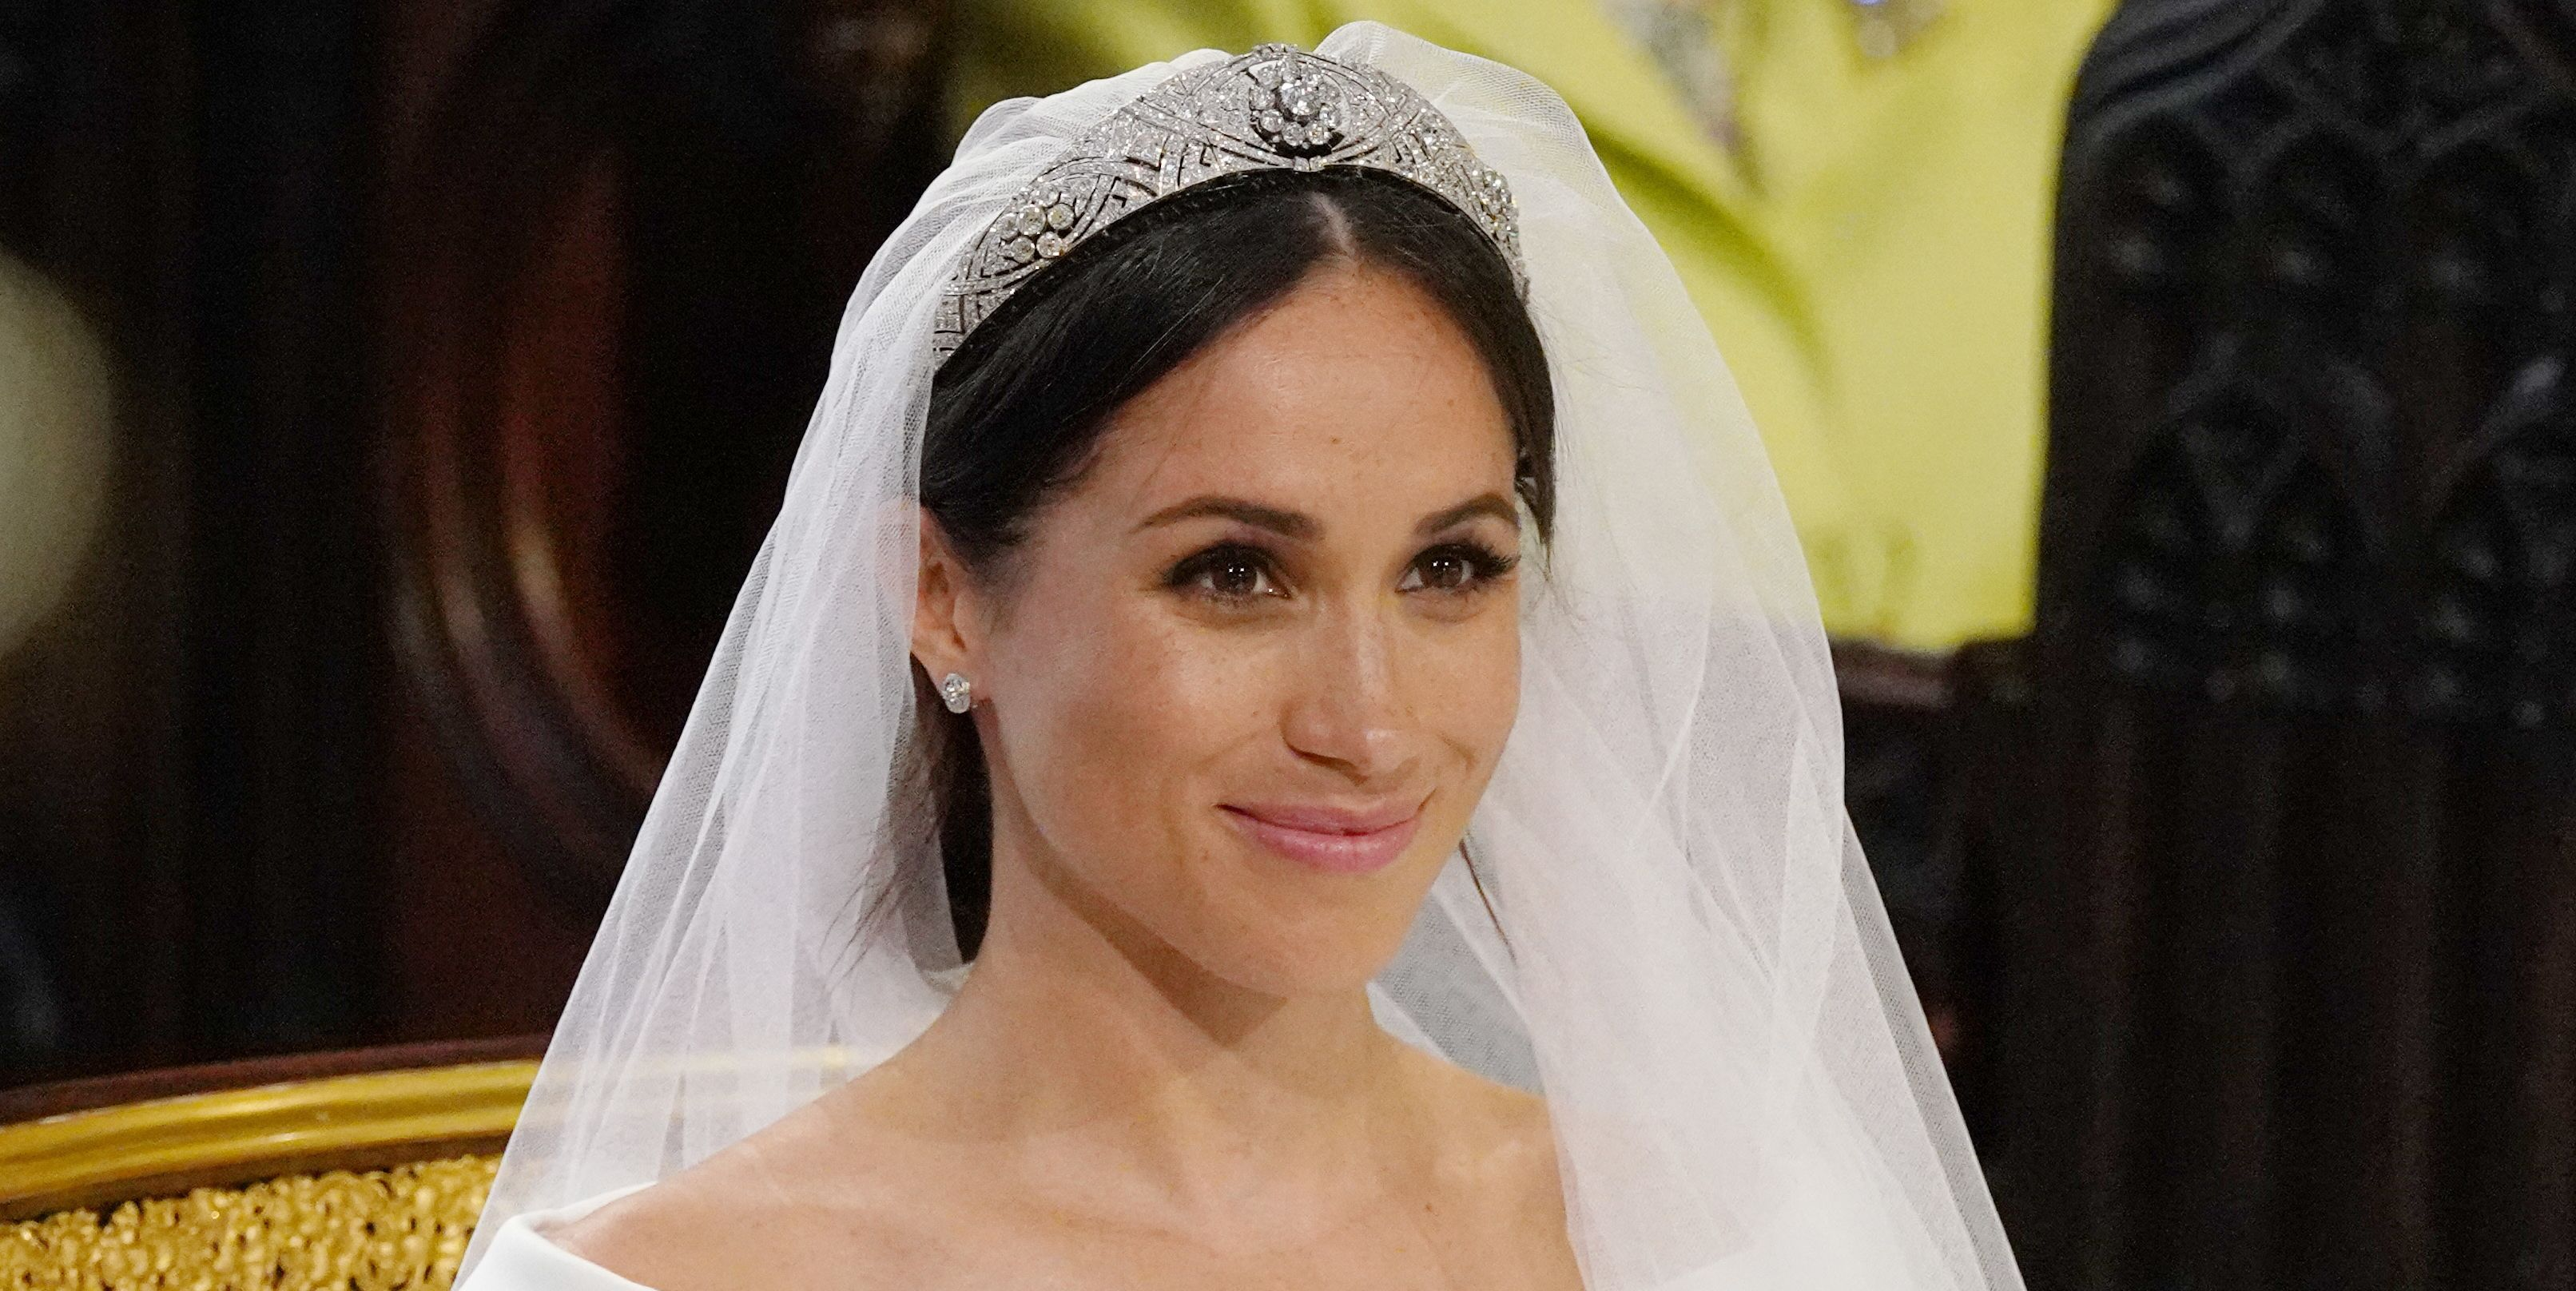 Meghan Markle Is on the Shortlist for Time's Person of the Year